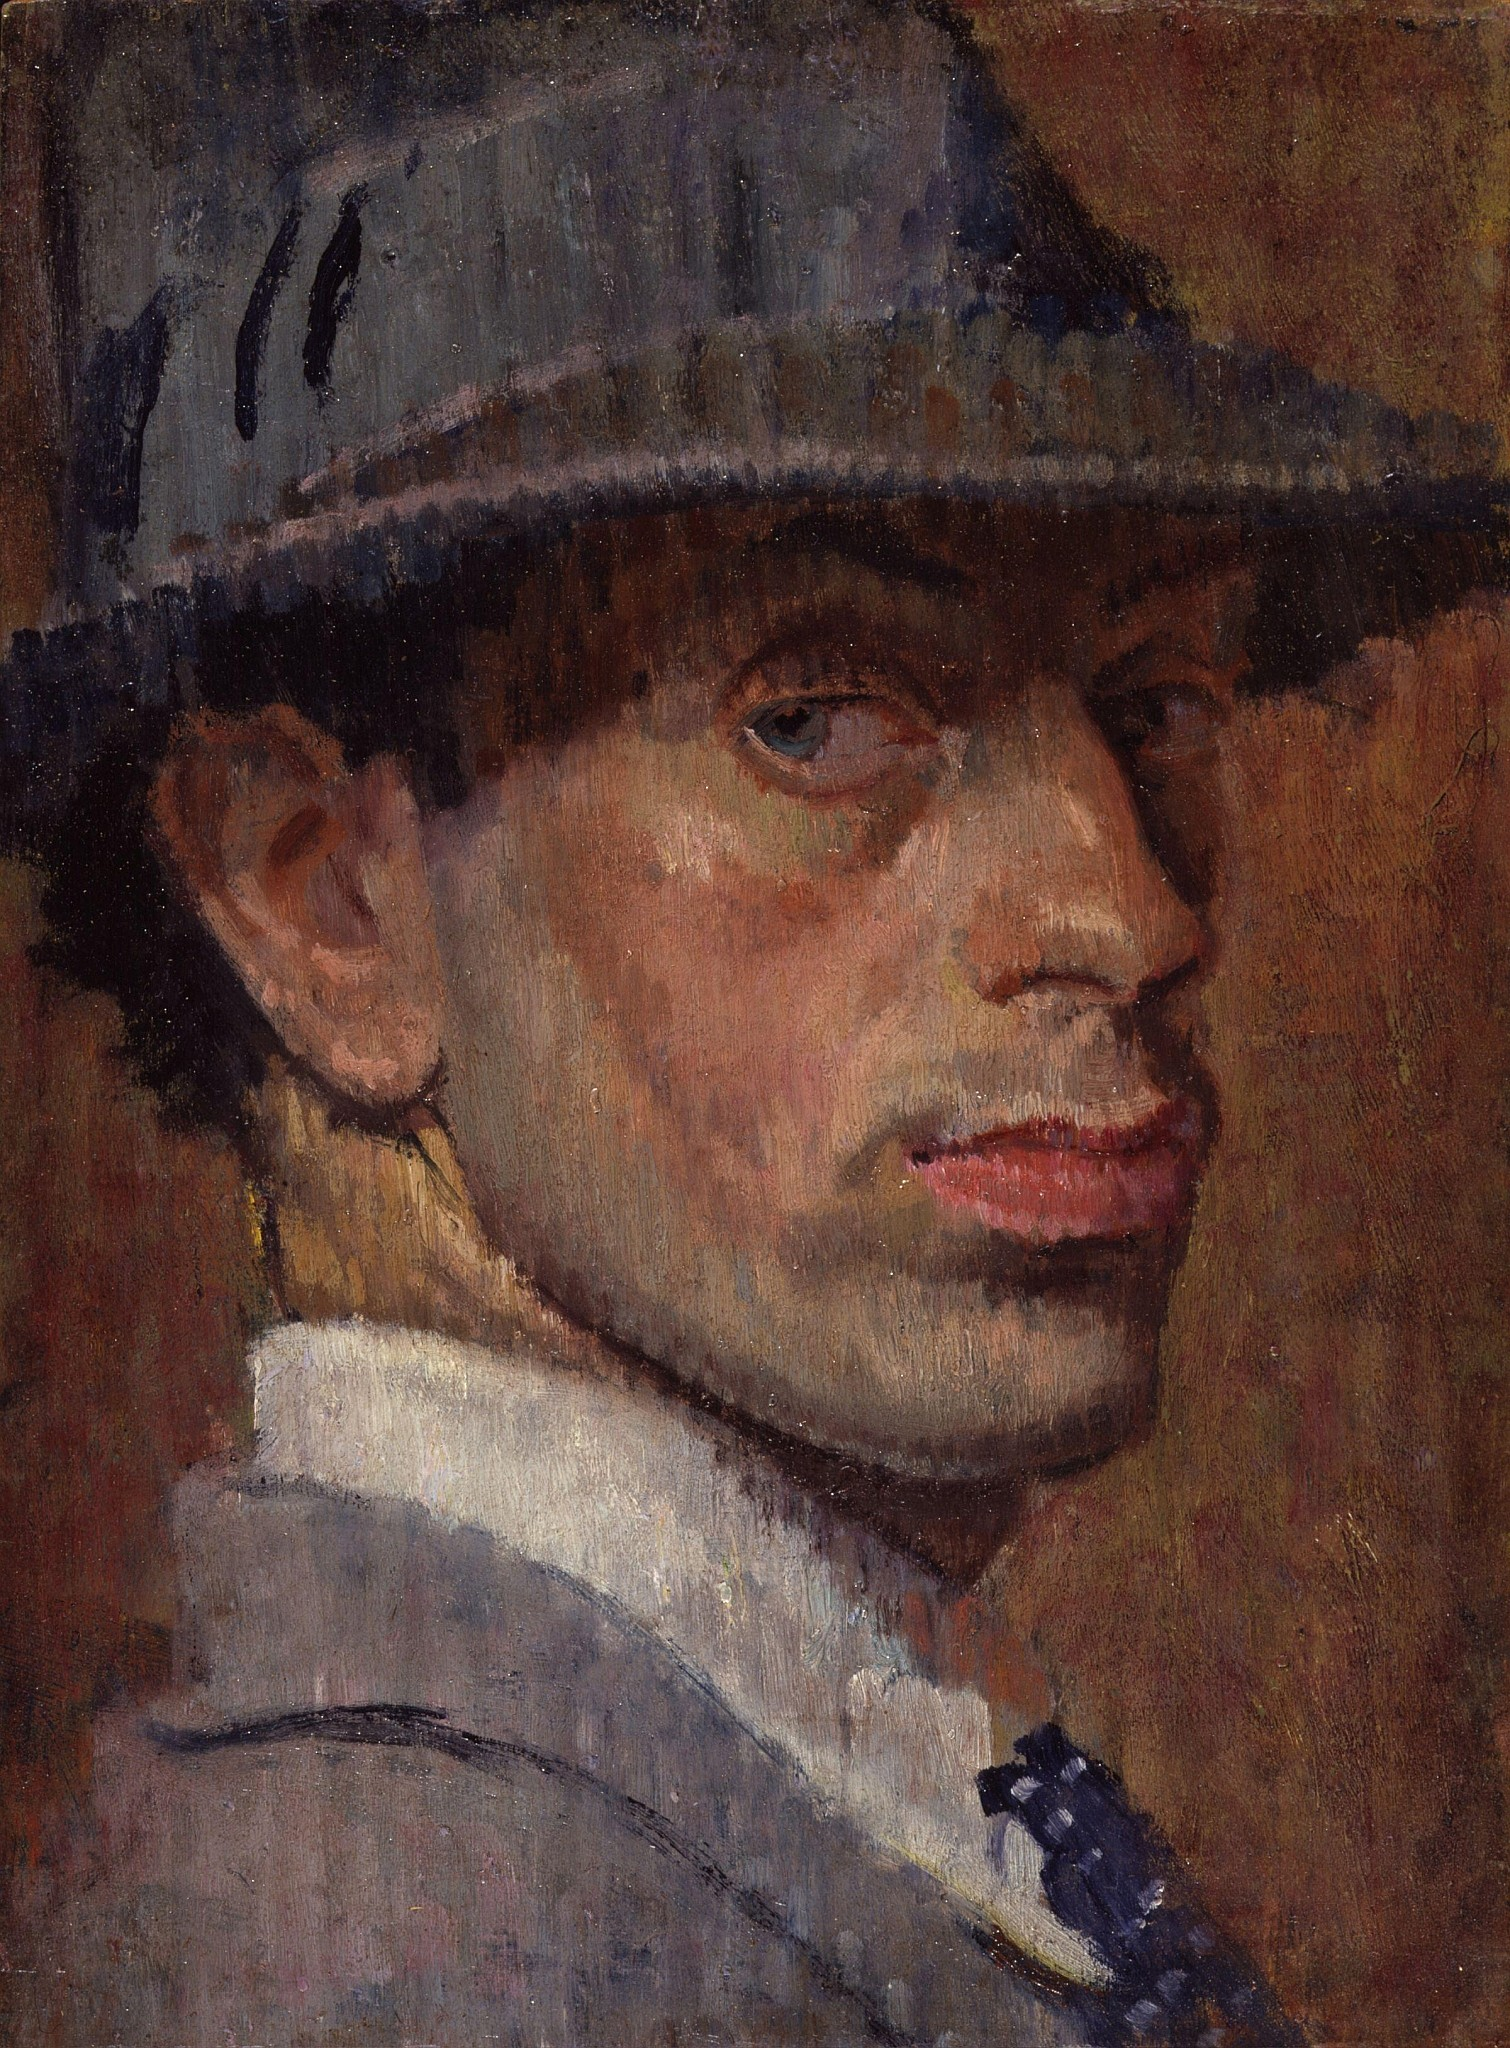 A self-portrait by Isaac Rosenberg. (Public domain)